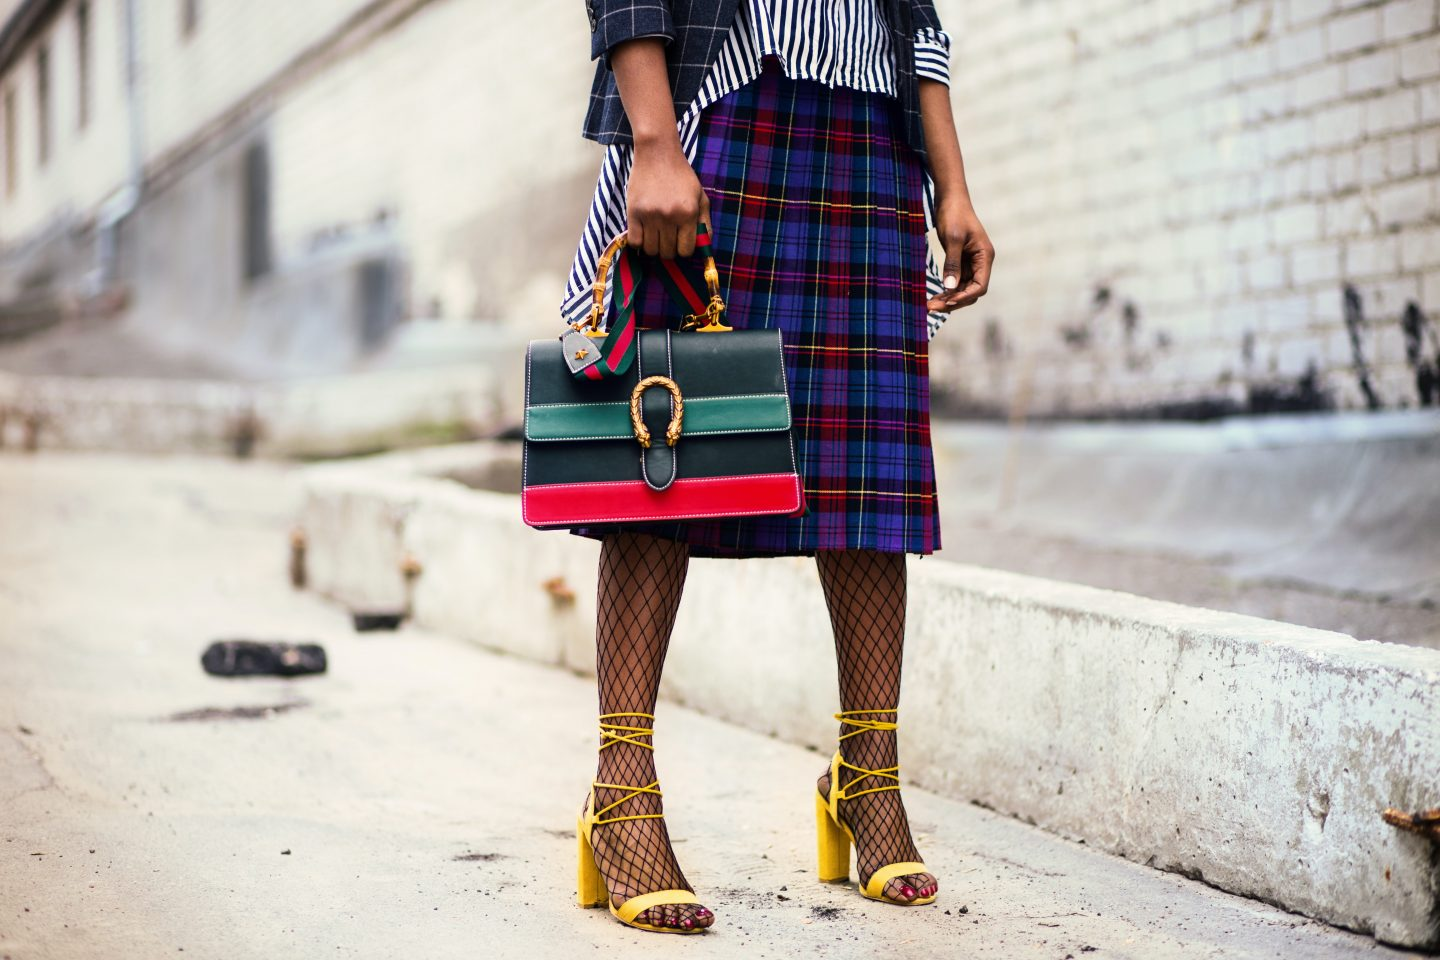 How To Transform Plain Outfits With The Right Accessories